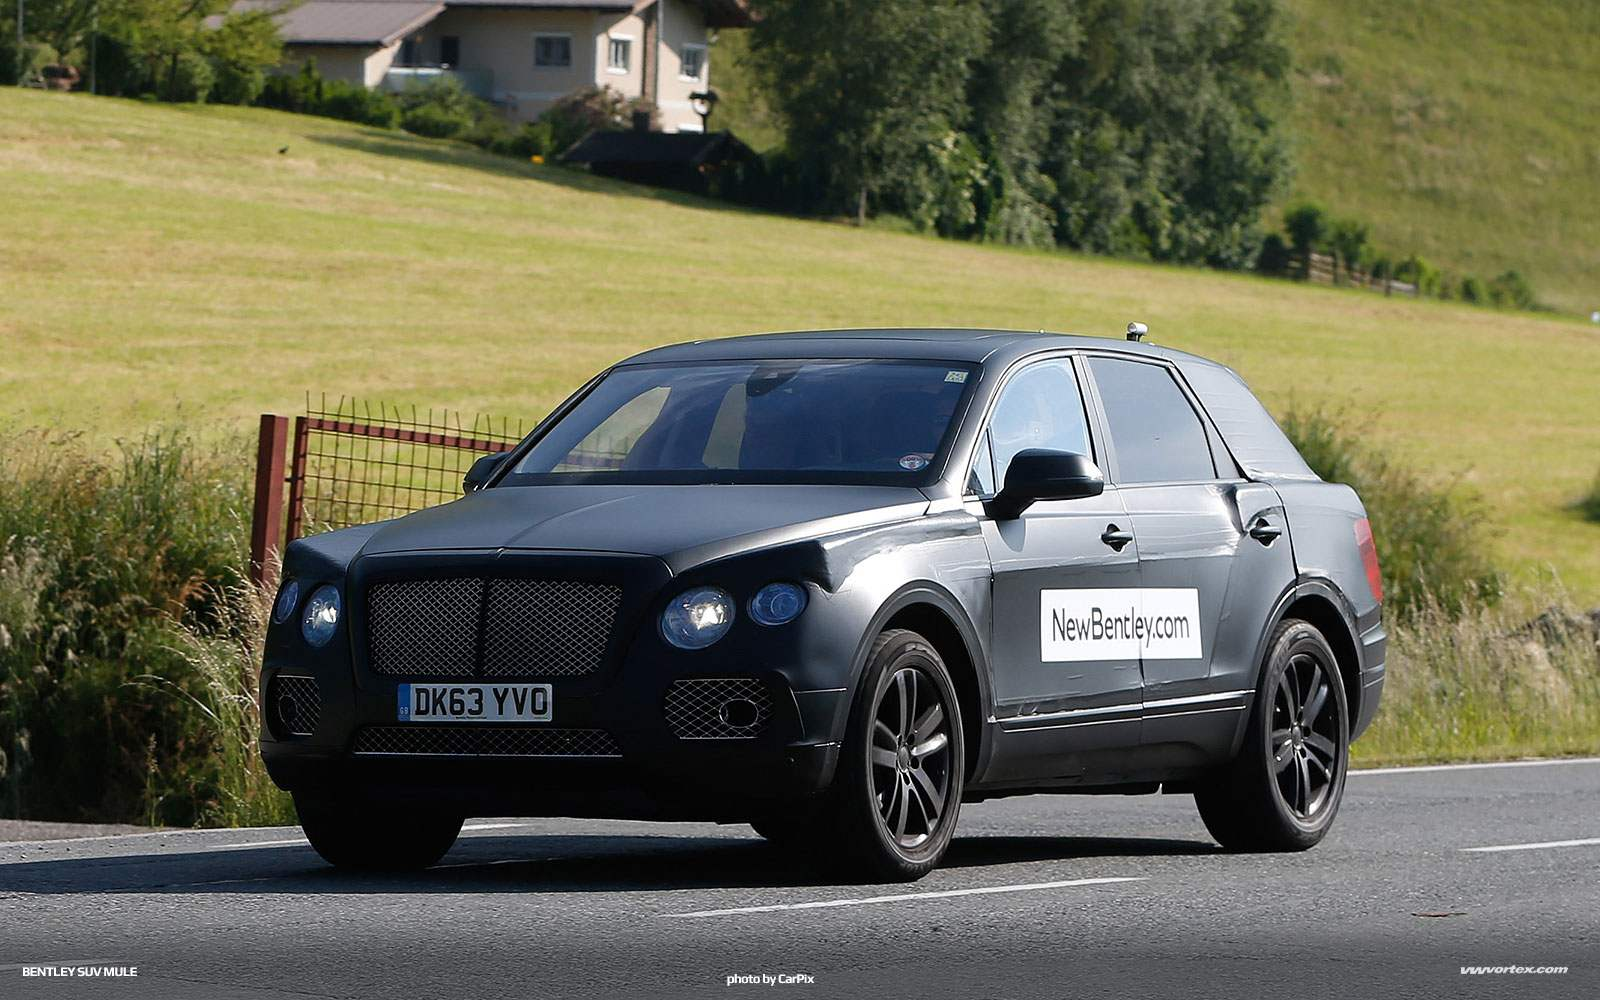 bentley-suv-mule-spy-photos-377